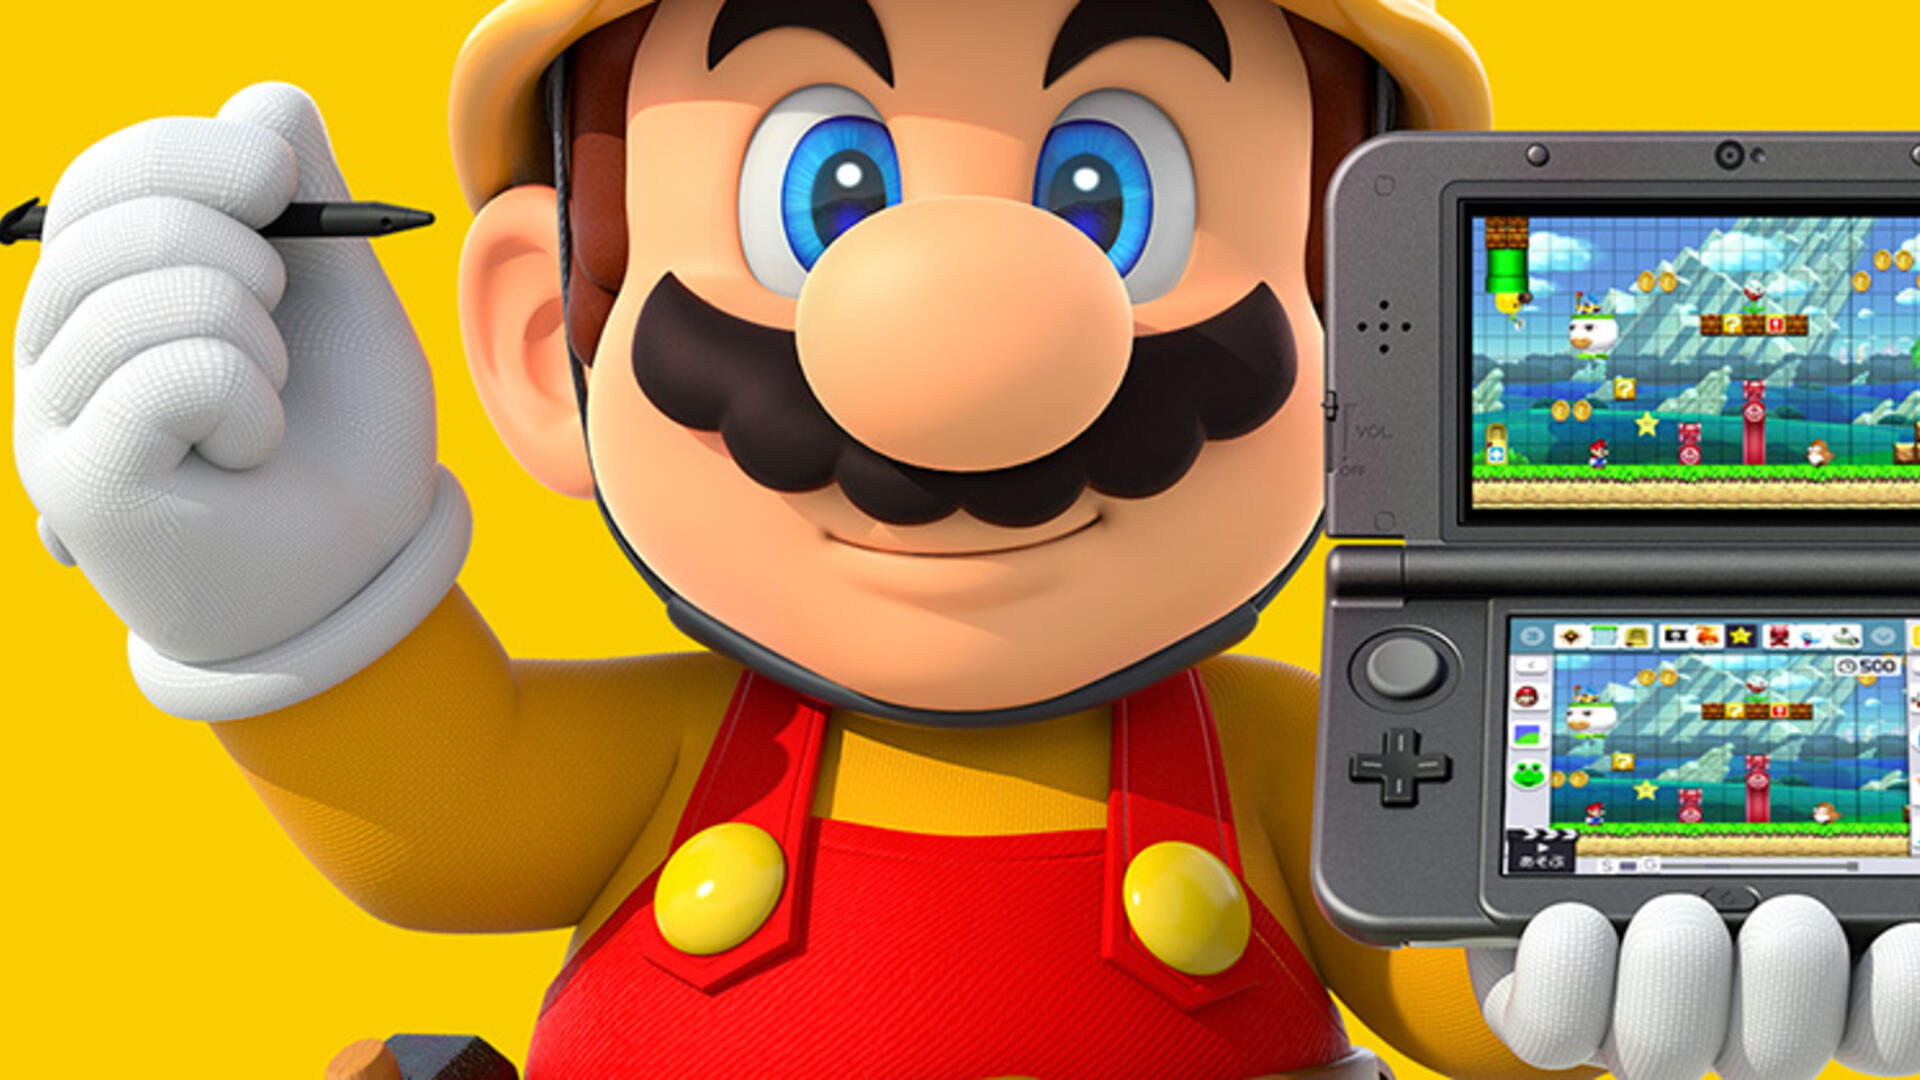 Nintendo Says it Still Supports the 3DS Despite its E3 2019 No-Show